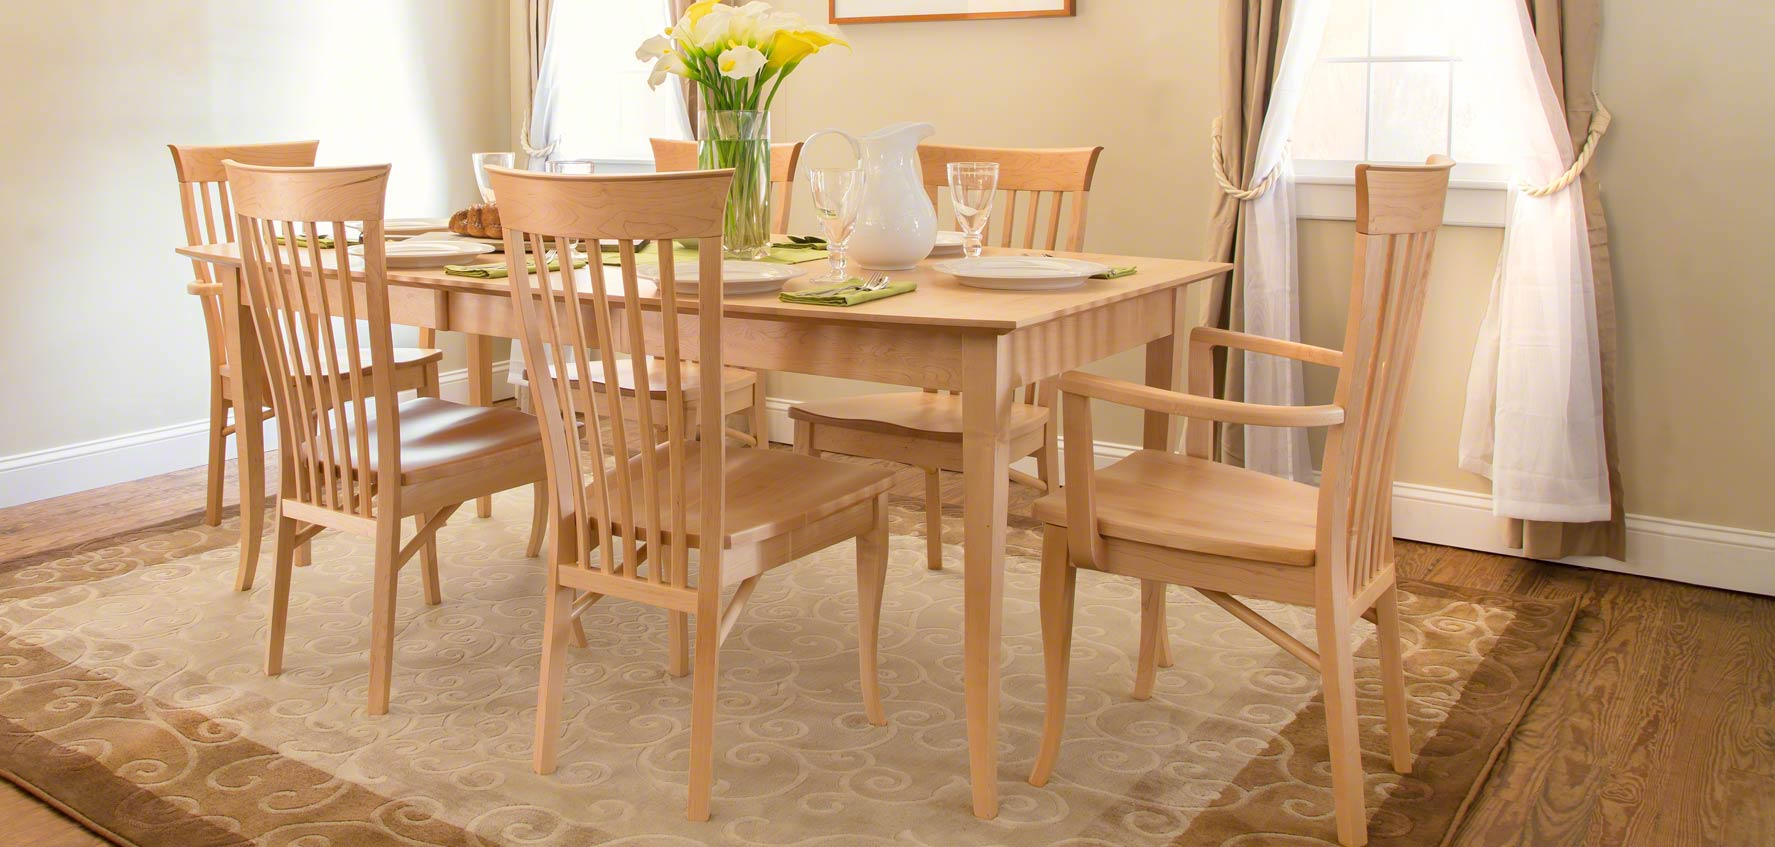 How to Change the Color of Wood Furniture